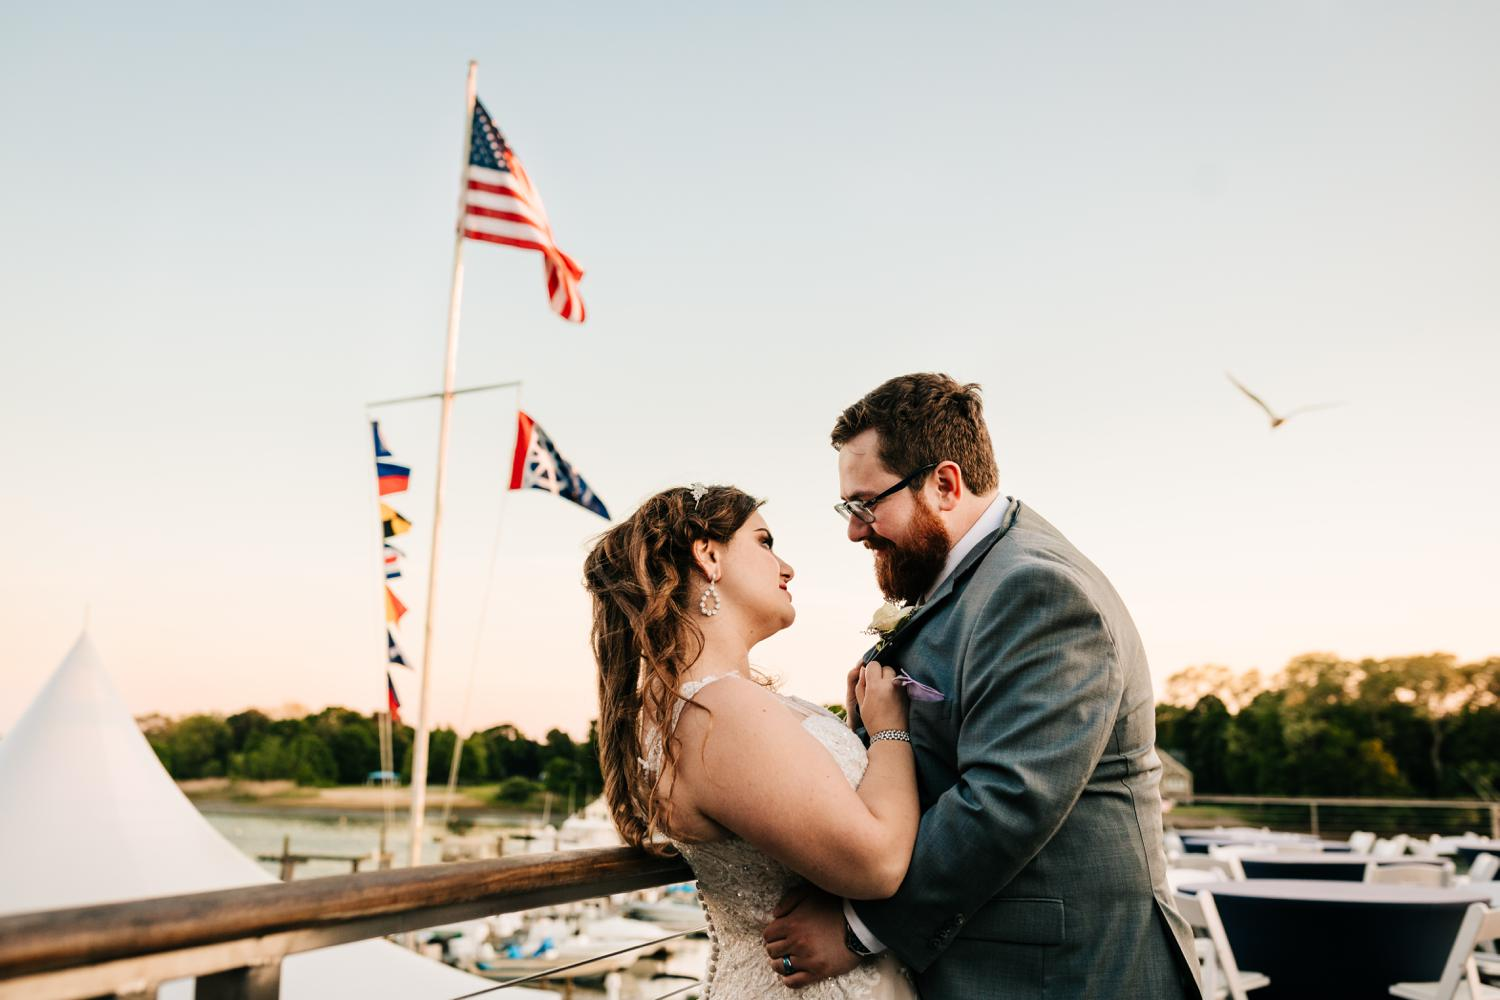 18. danversport-yacht-club-Andrea-van-orsouw-photography-natural-fun-wedding-photographer-adventurous-boston-albuquerque3.jpg